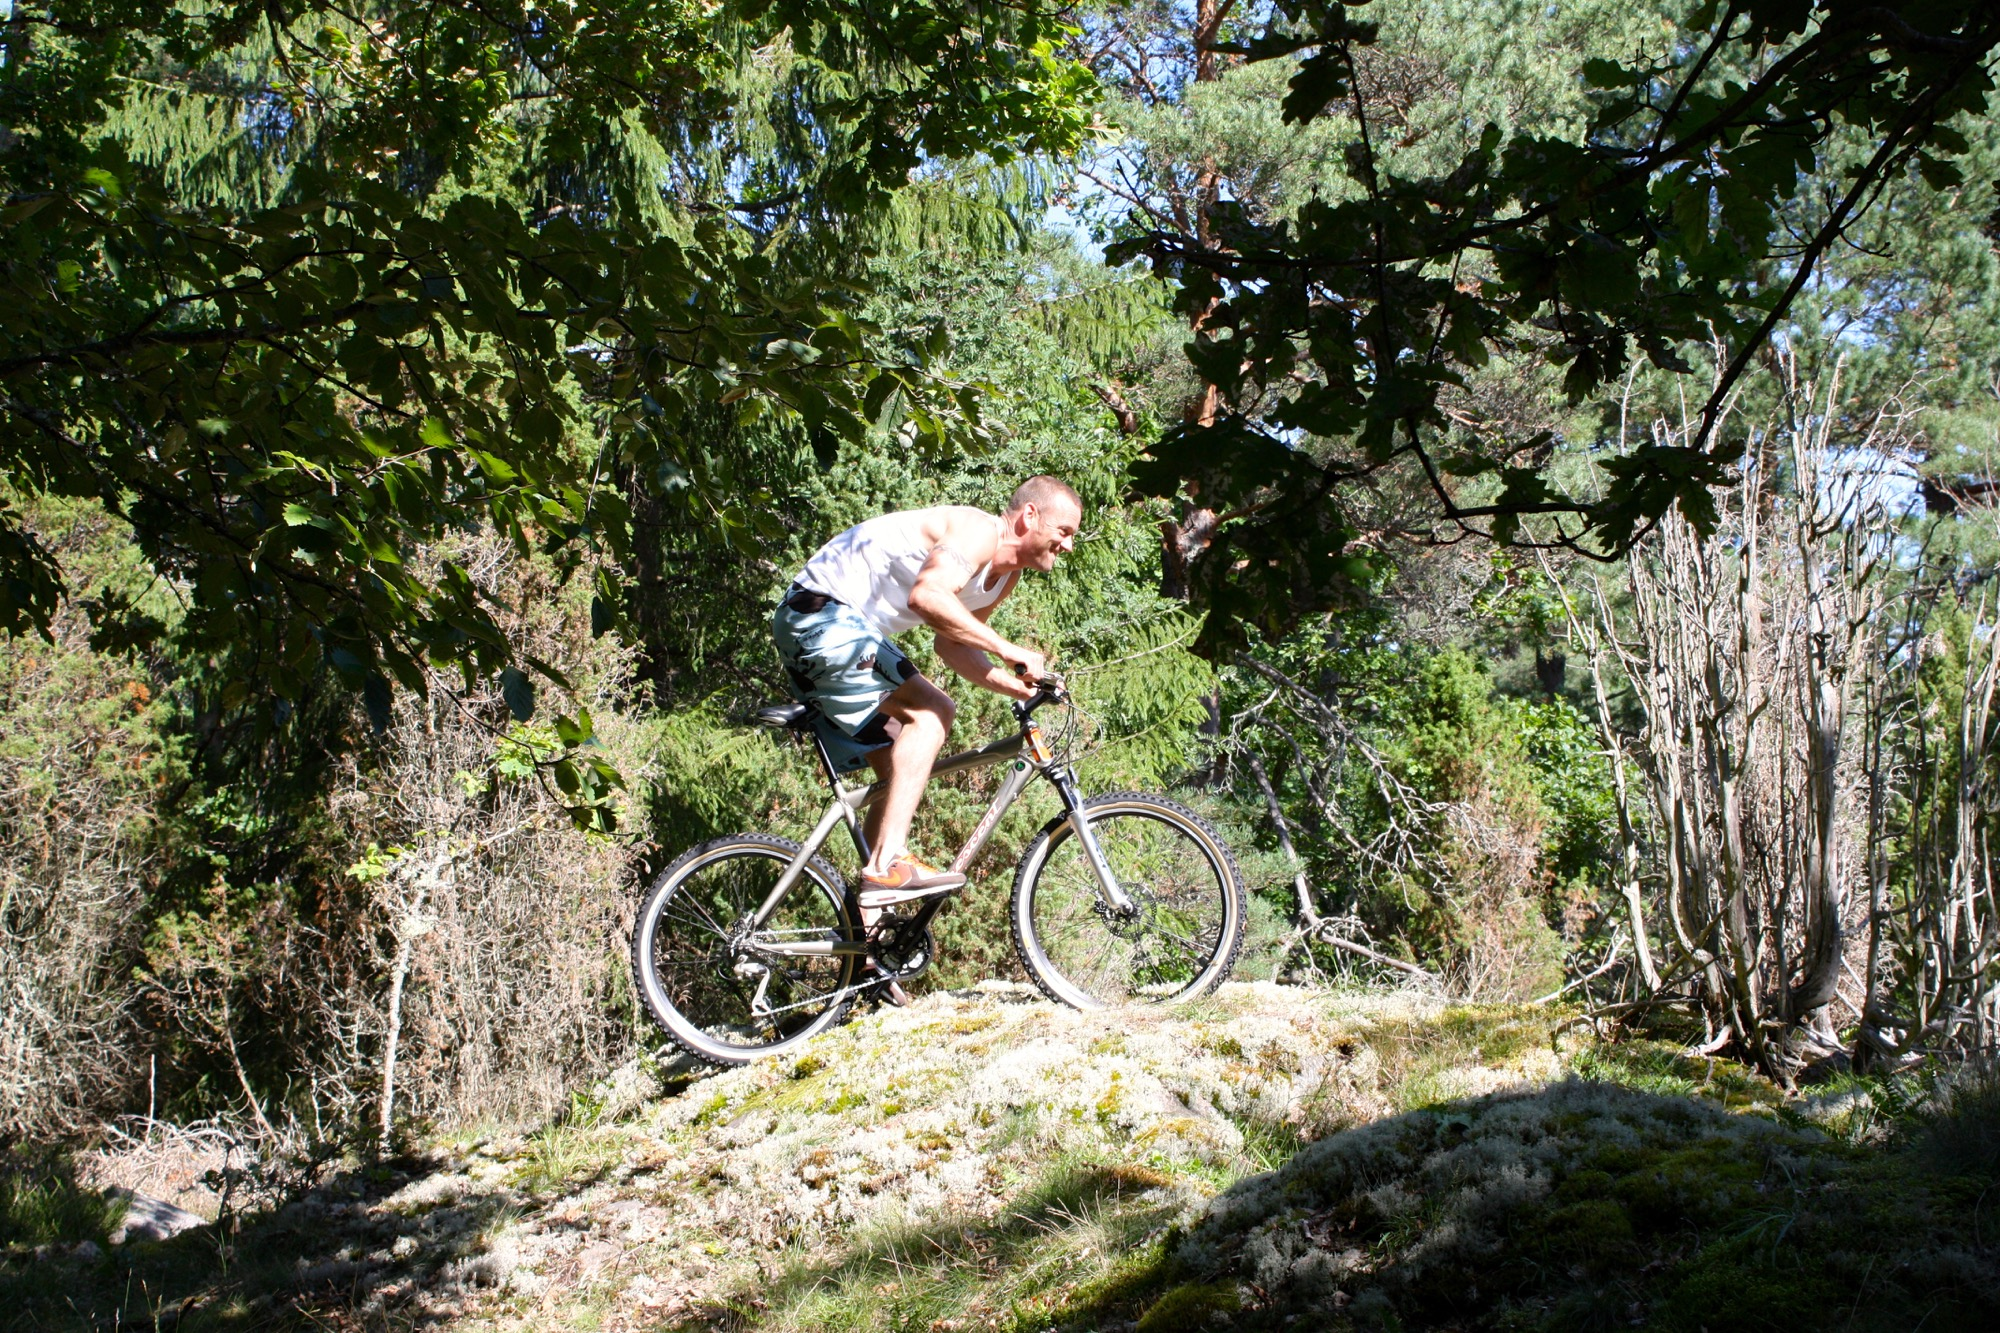 Mountainbiken-in-het-bos